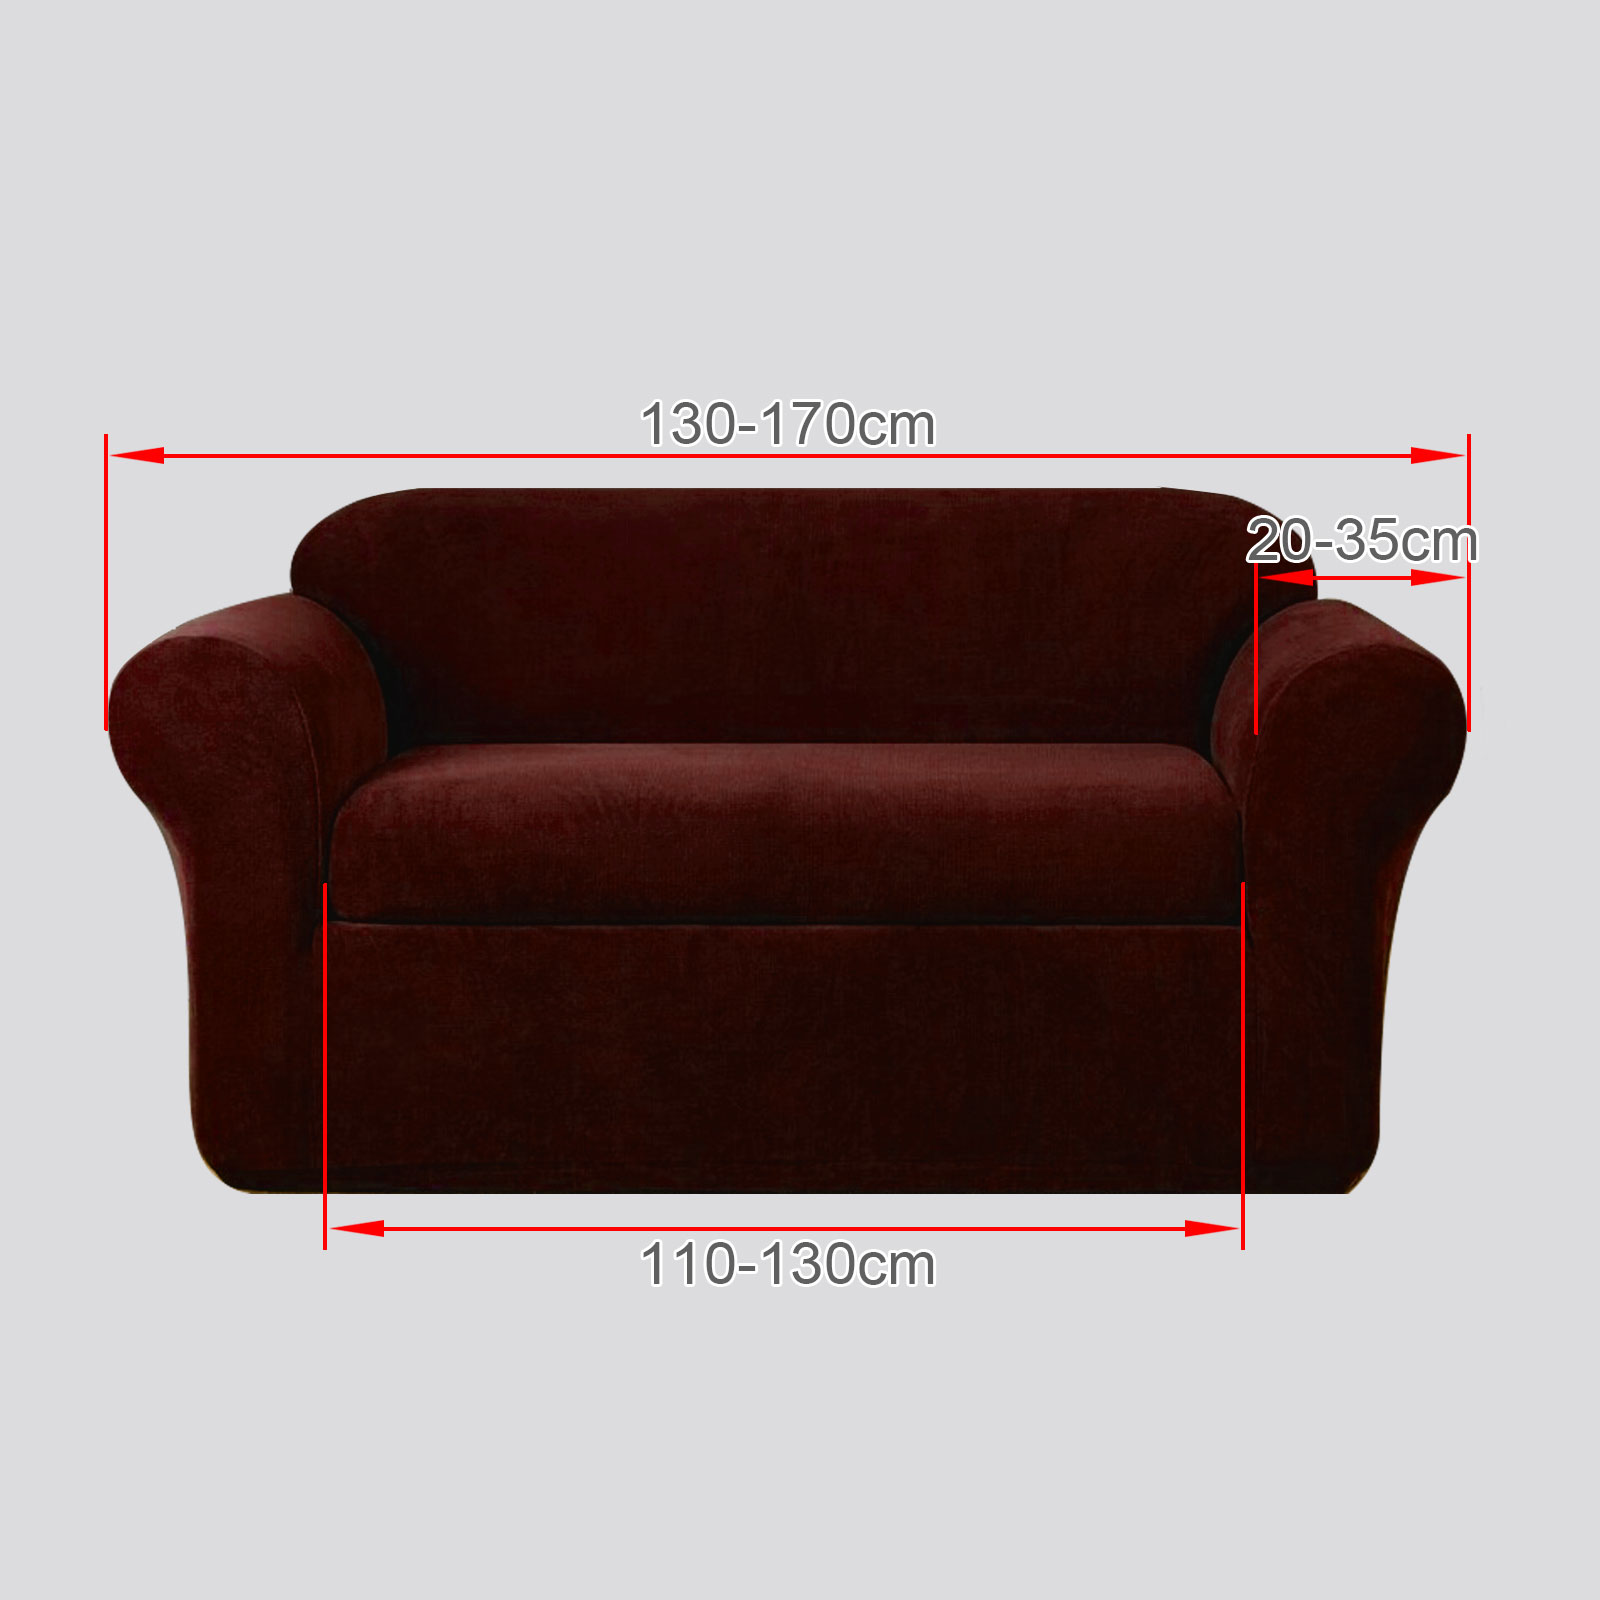 housse canap spandex polyester lycra fini 1 2 3 place sofa fauteuil extensible ebay. Black Bedroom Furniture Sets. Home Design Ideas